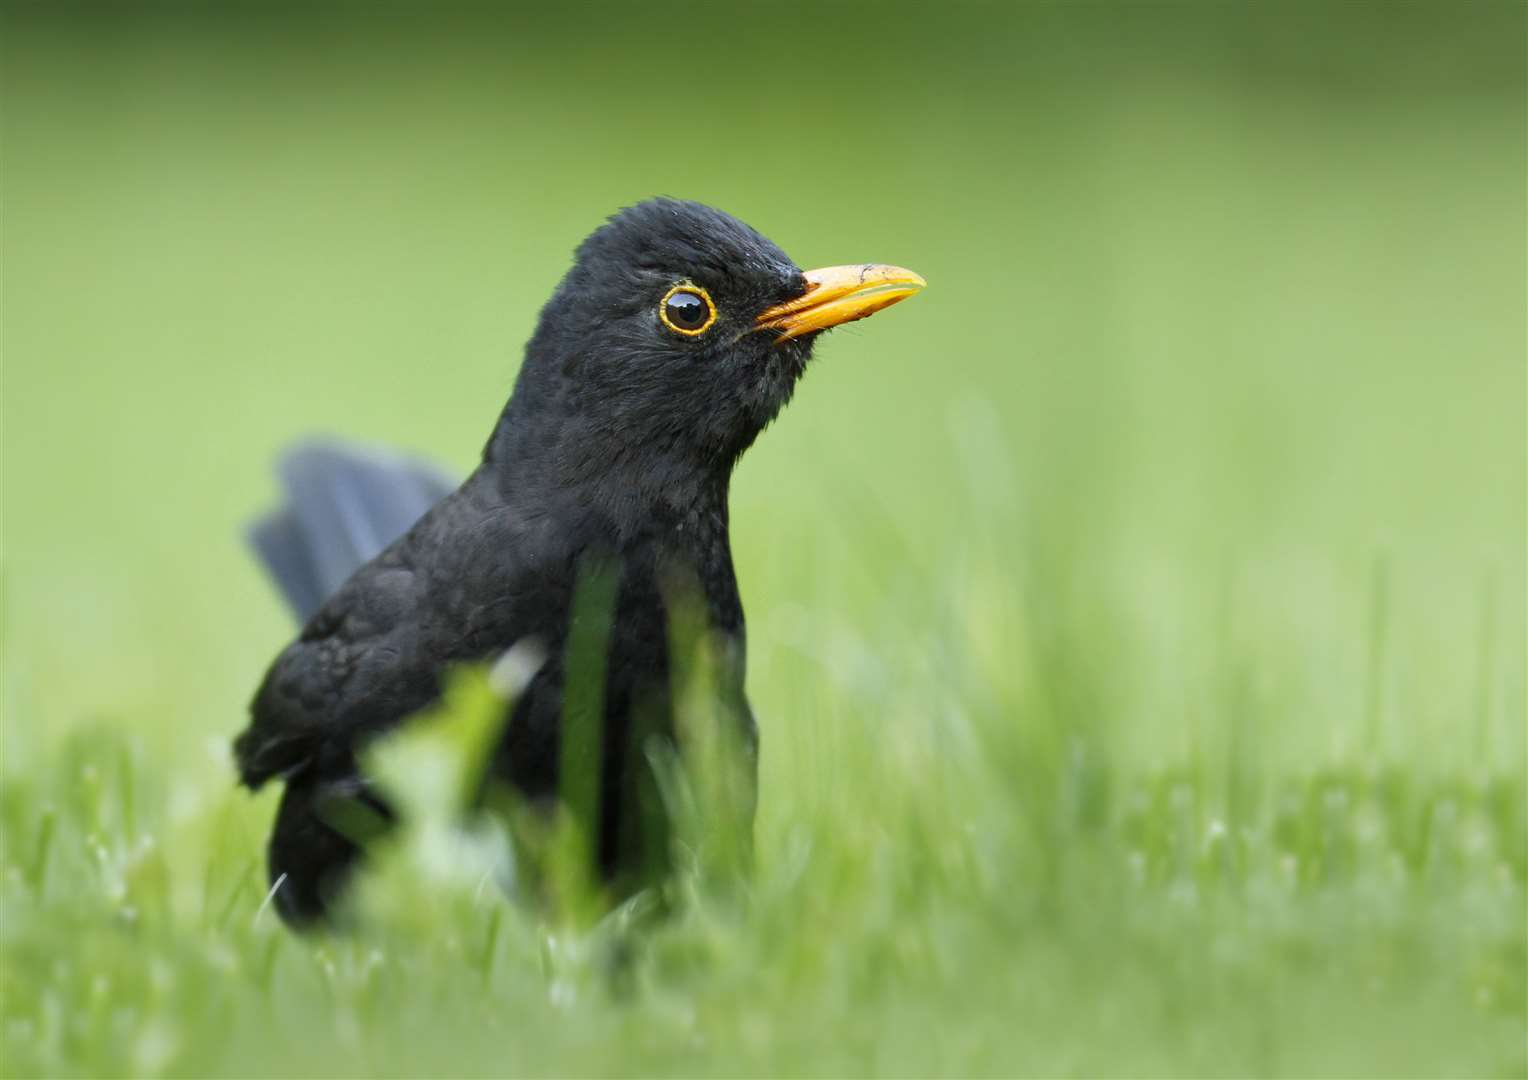 You might see birds like blackbirds Picture: Jon Hawkins Surrey Hill Photography